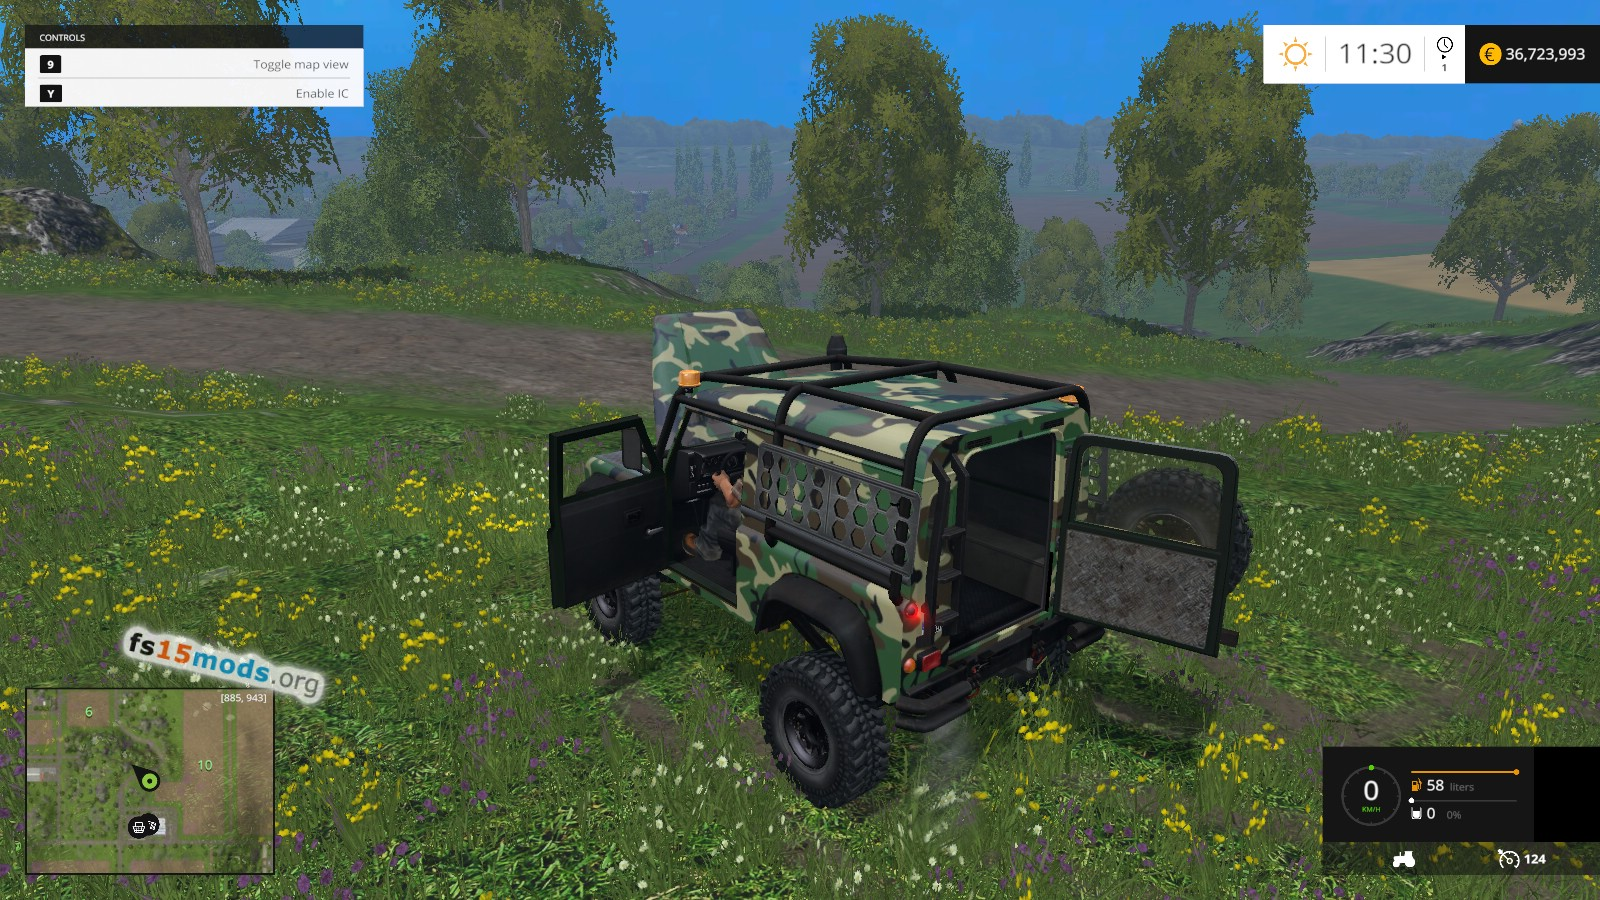 Army Land Rover Defender Fs15 Mods